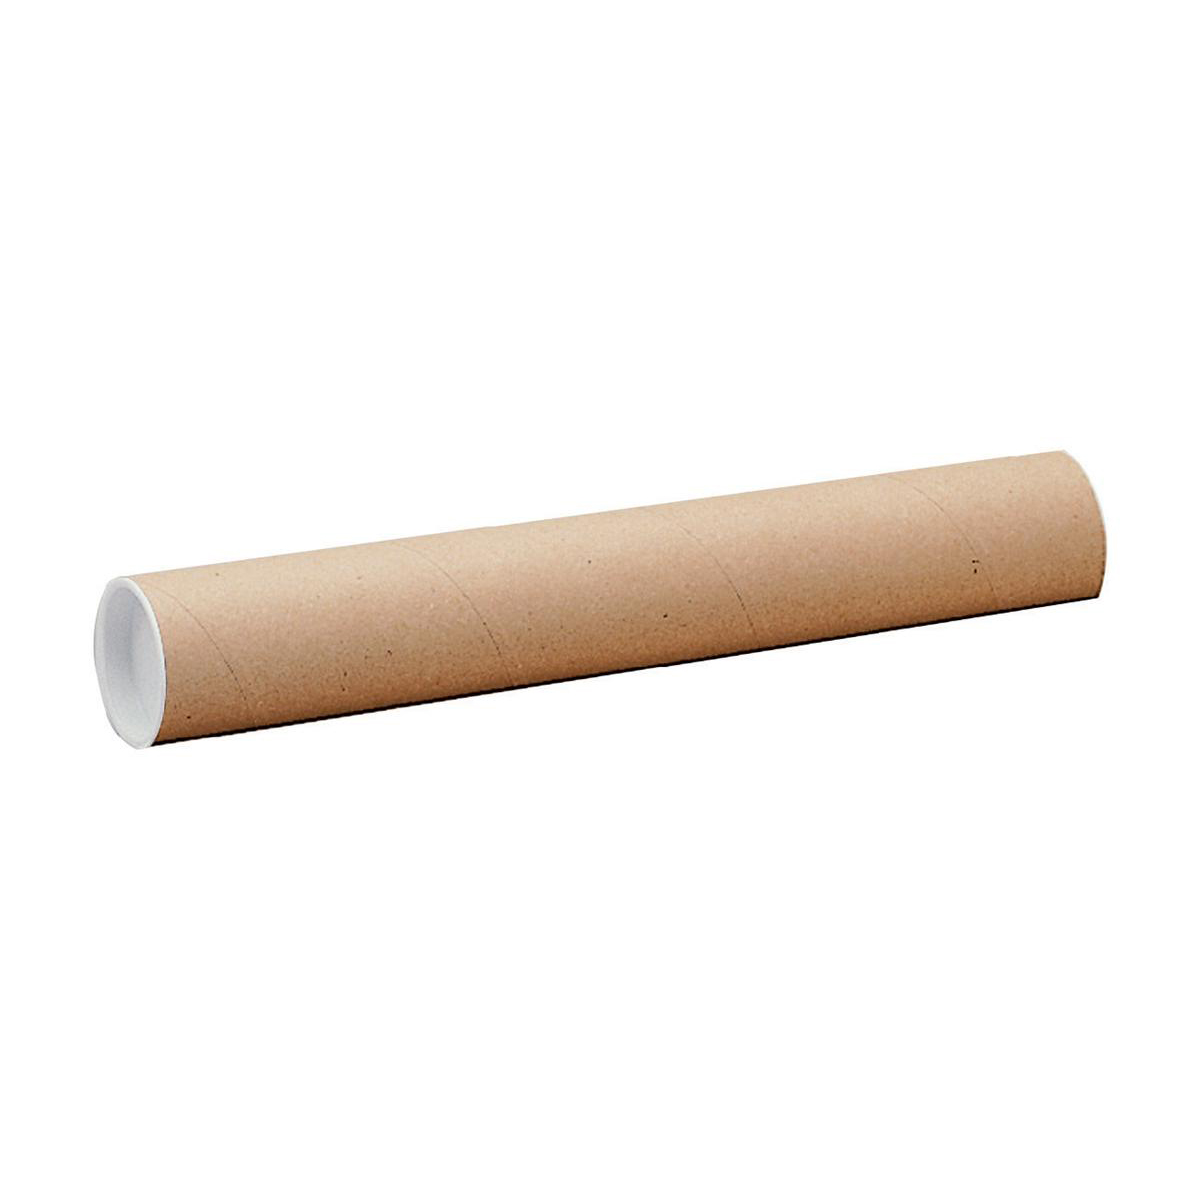 Postal Tubes Postal Tube Cardboard with Plastic End Caps L610xDia.76mm RBL10523 Pack 12